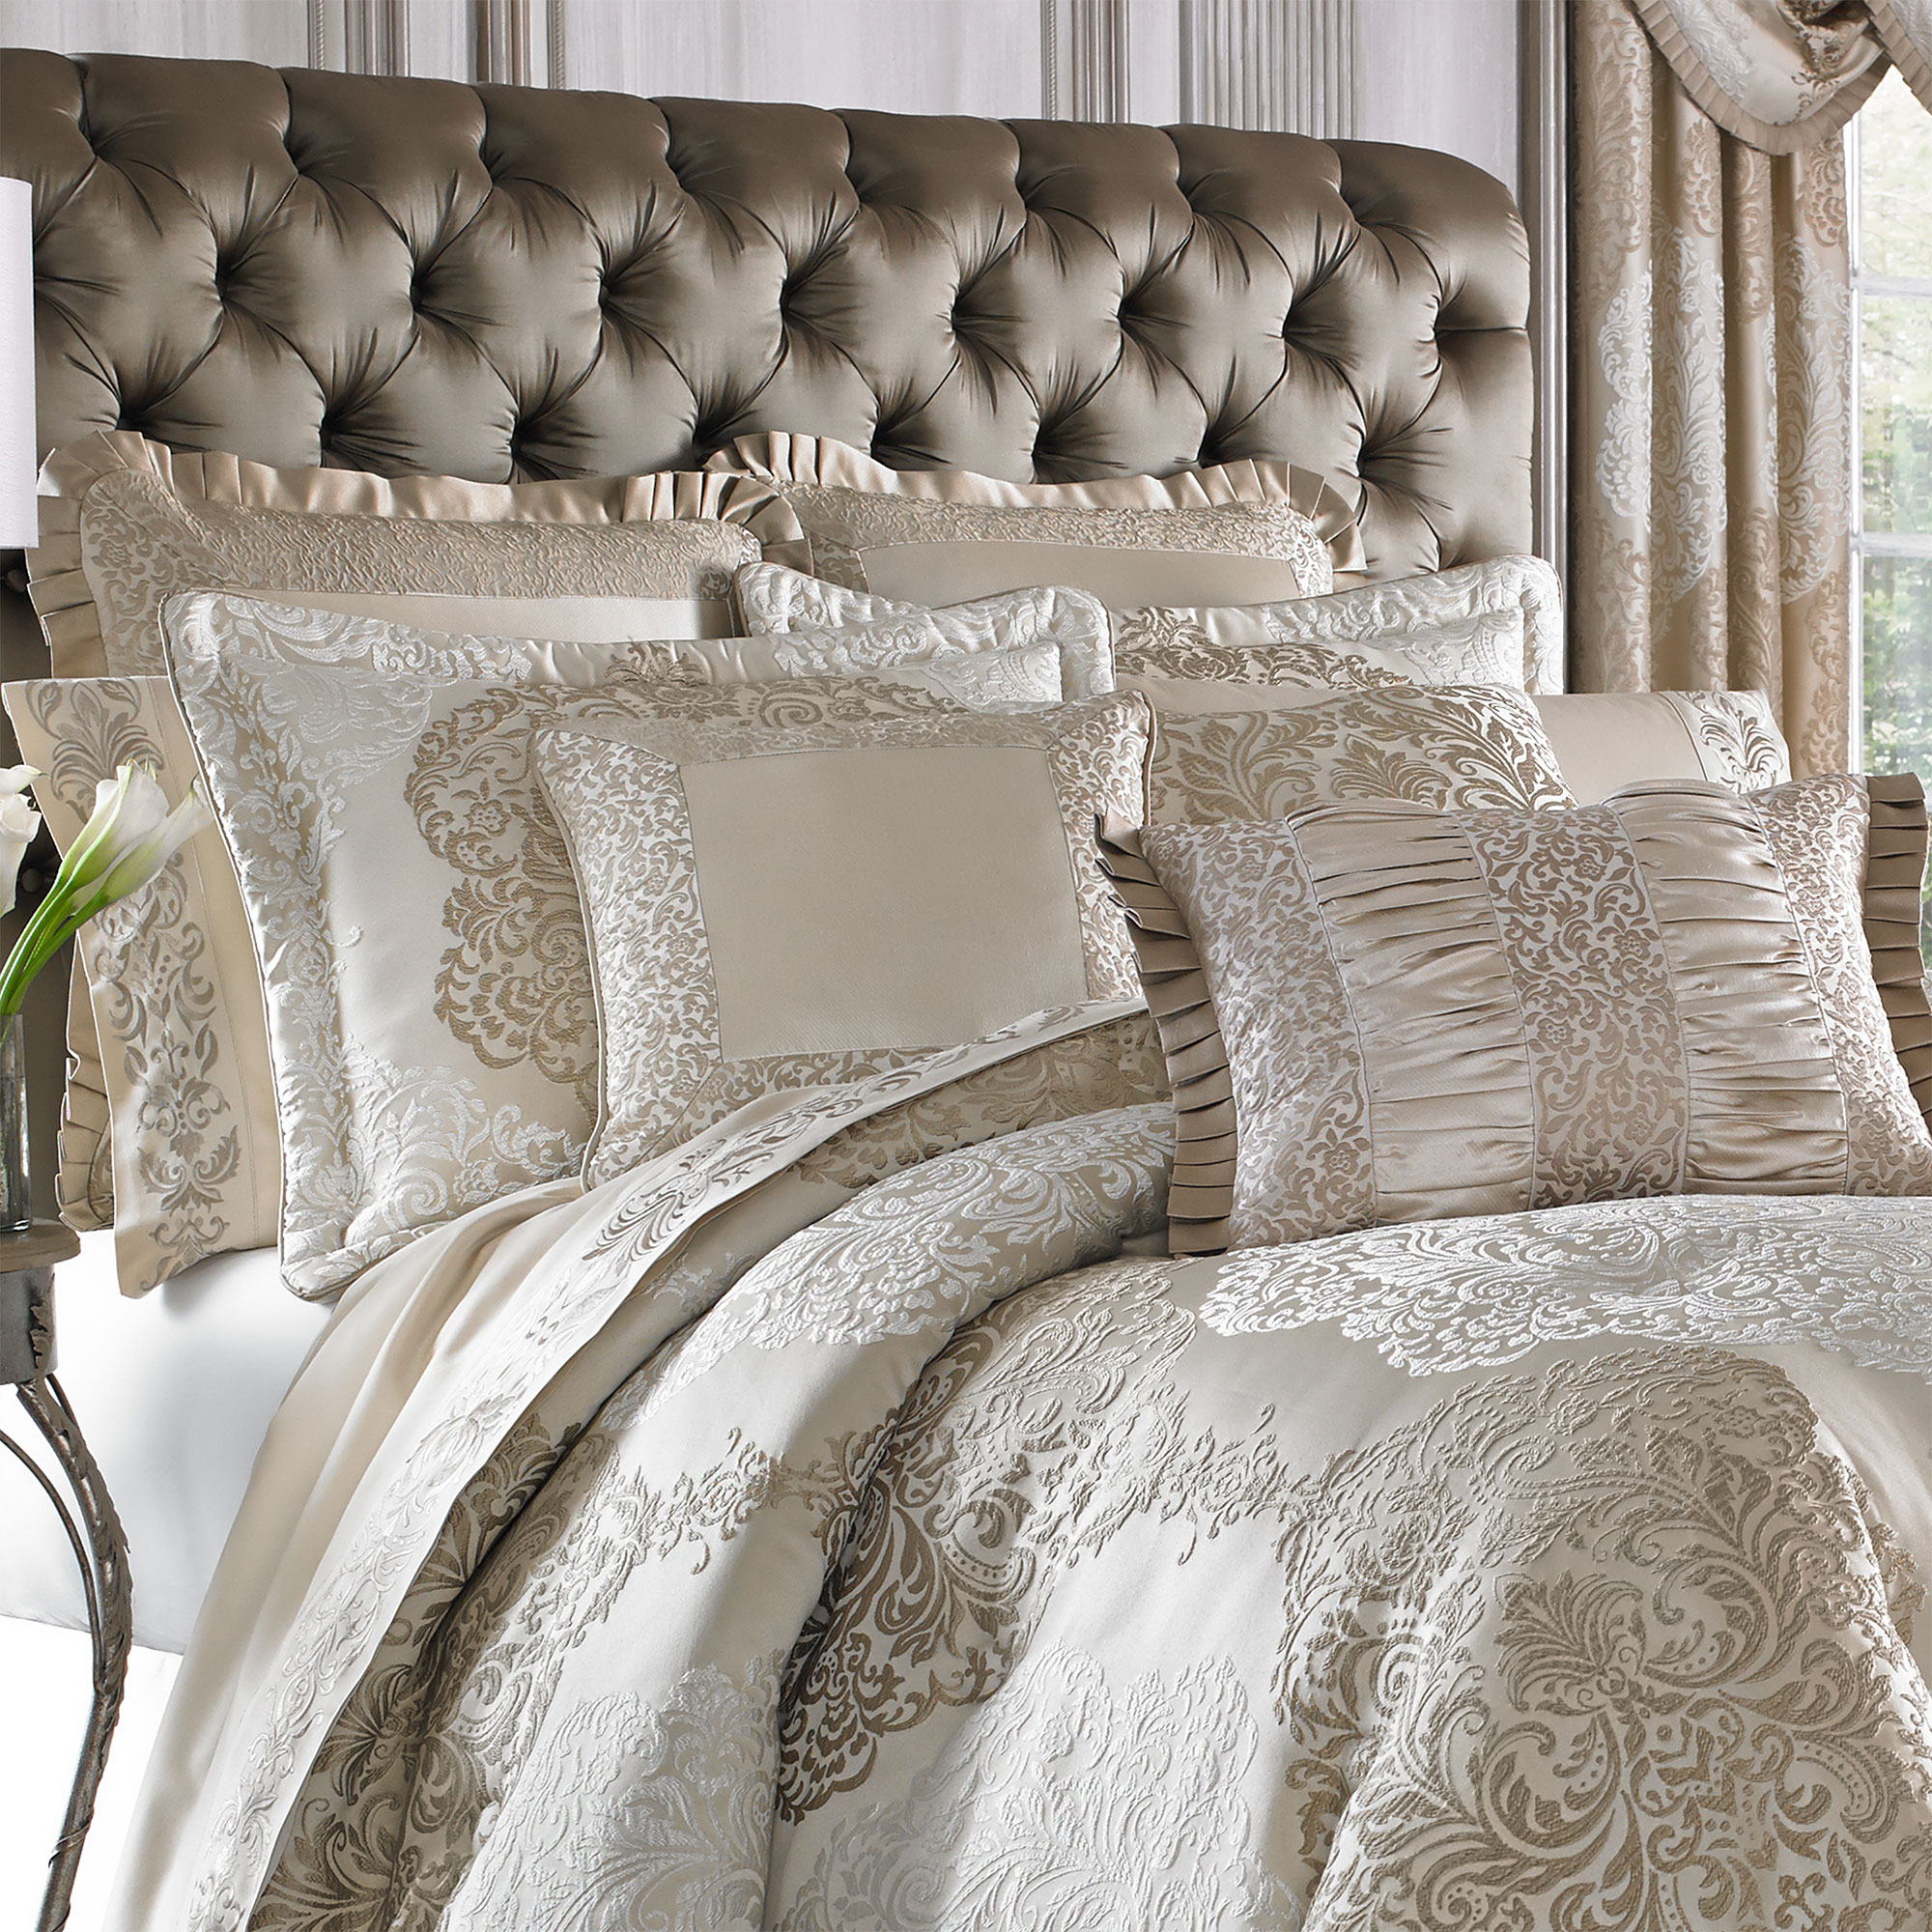 La Scala Gold Queen 4 Piece Comforter Set